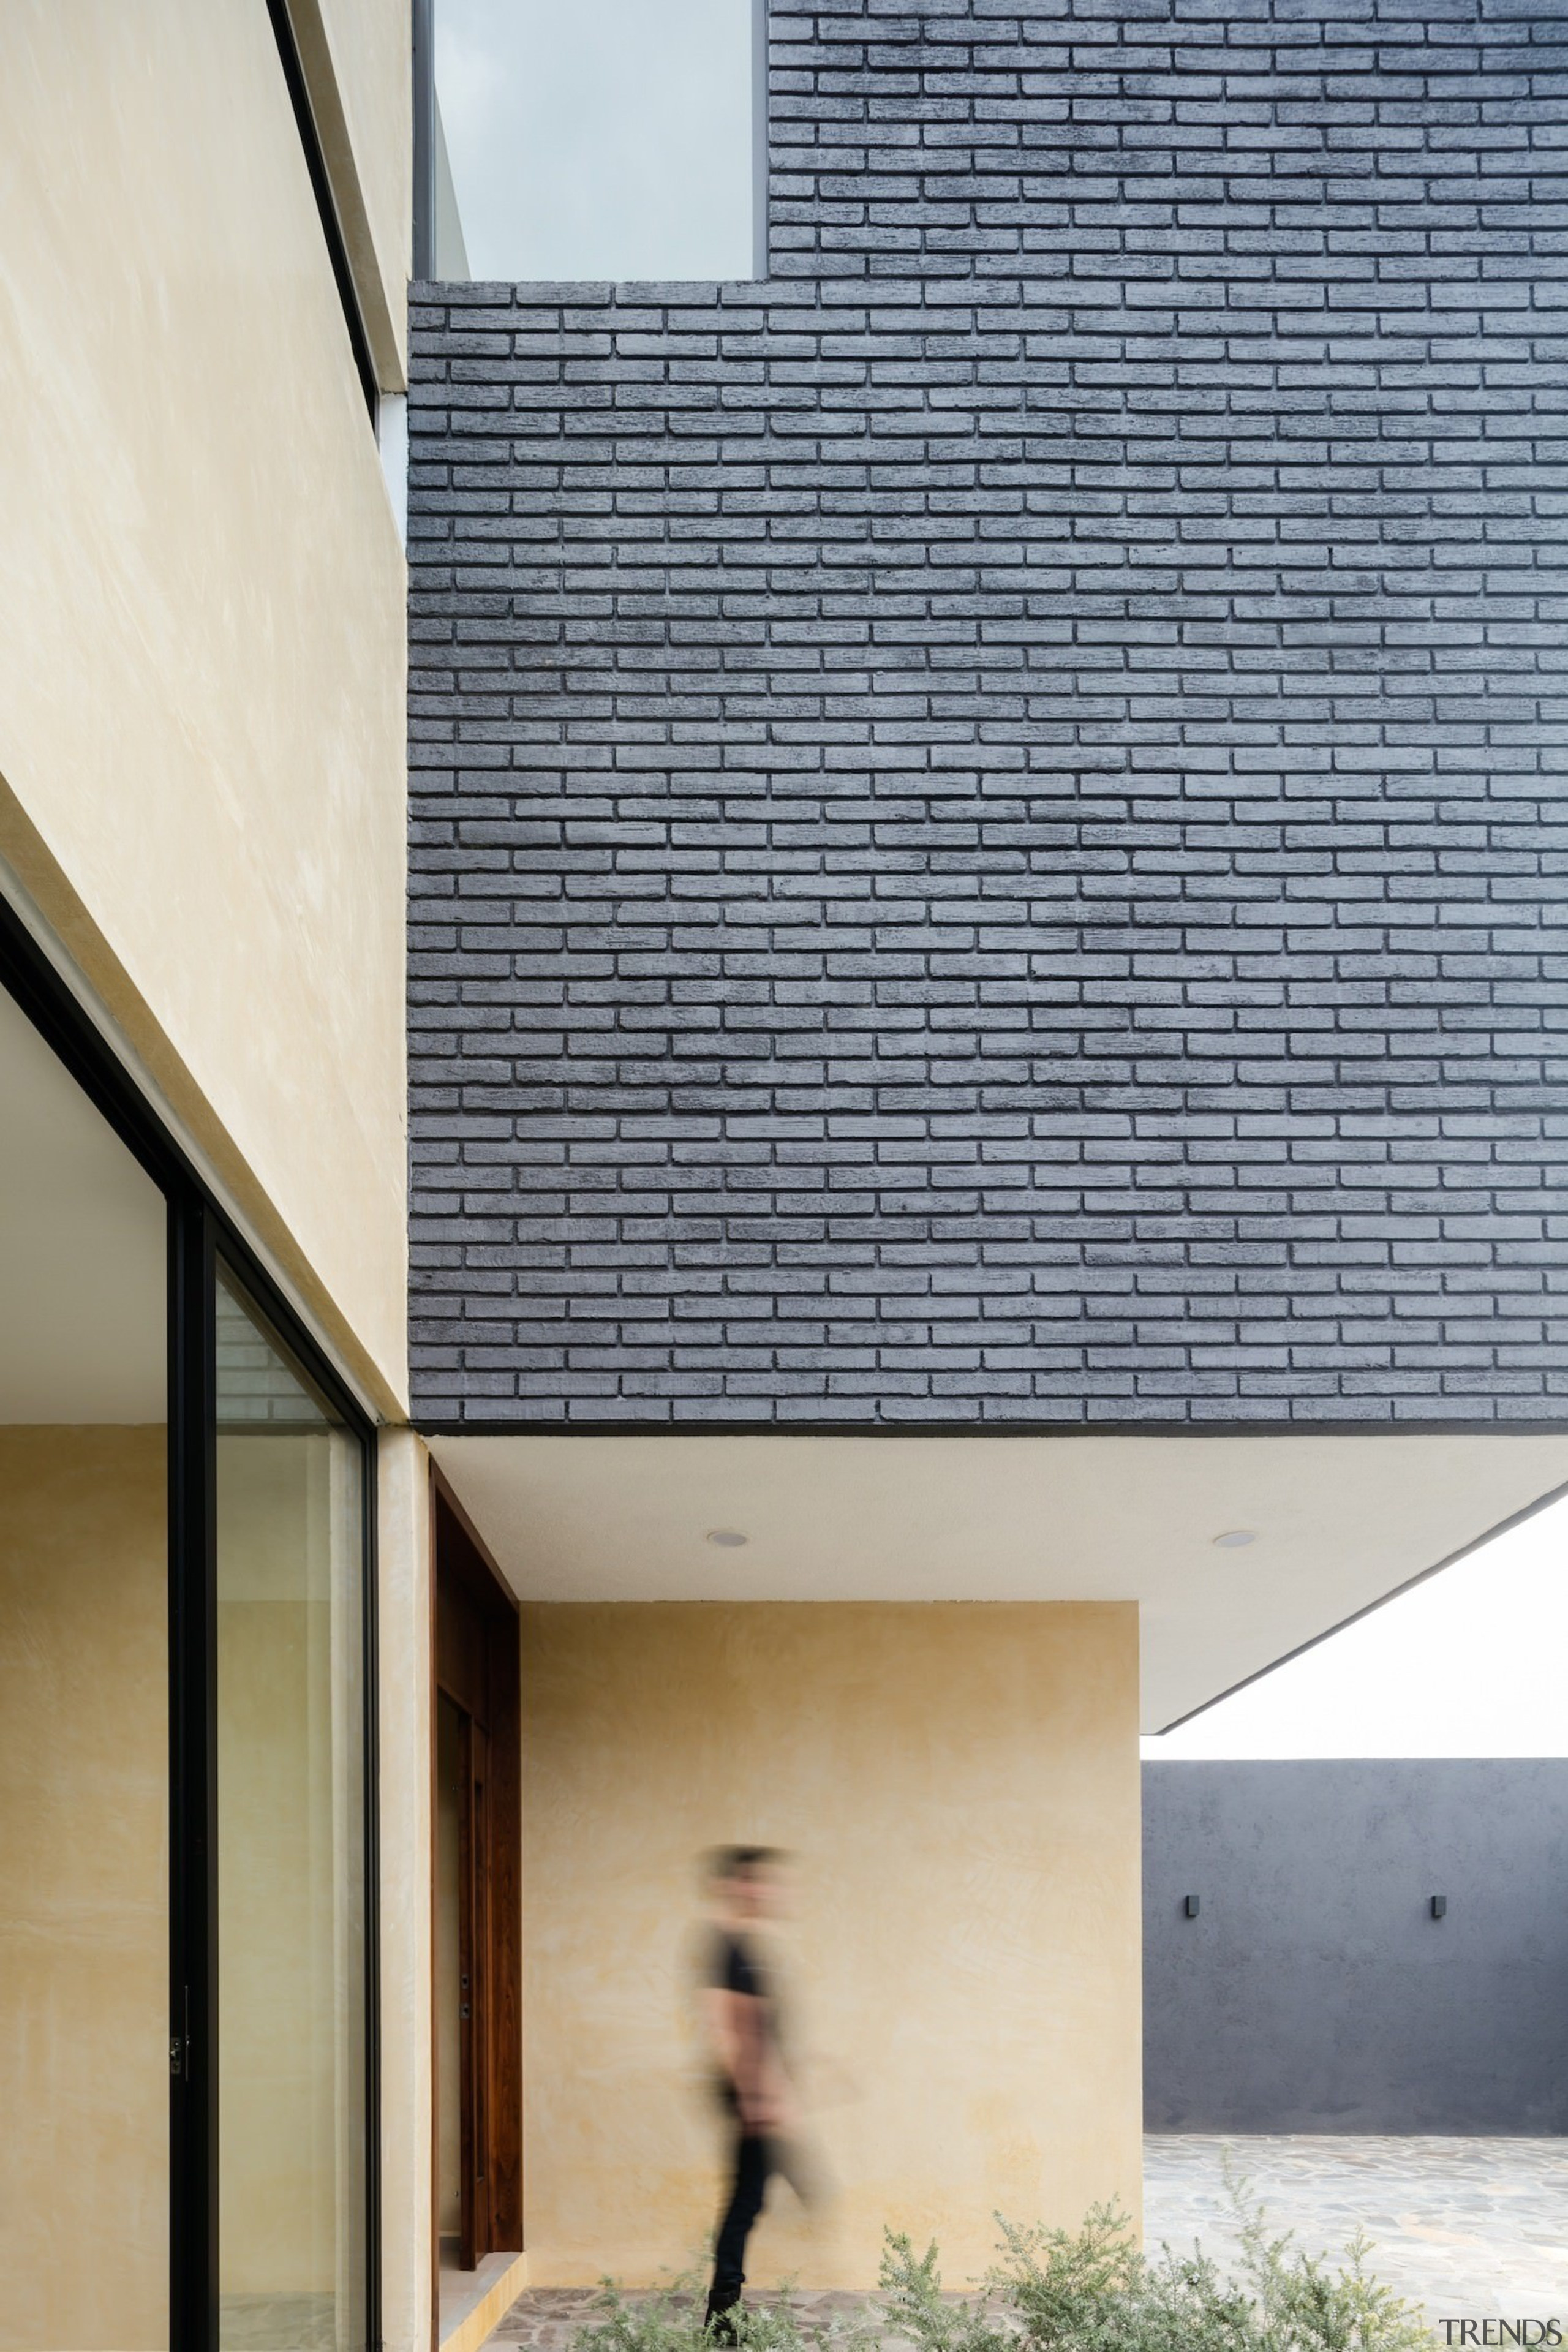 Architect: Espacio 18 ArquitecturaPhotography by Lorena Darquea architecture, building, daylighting, daytime, facade, house, roof, sky, window, gray, white